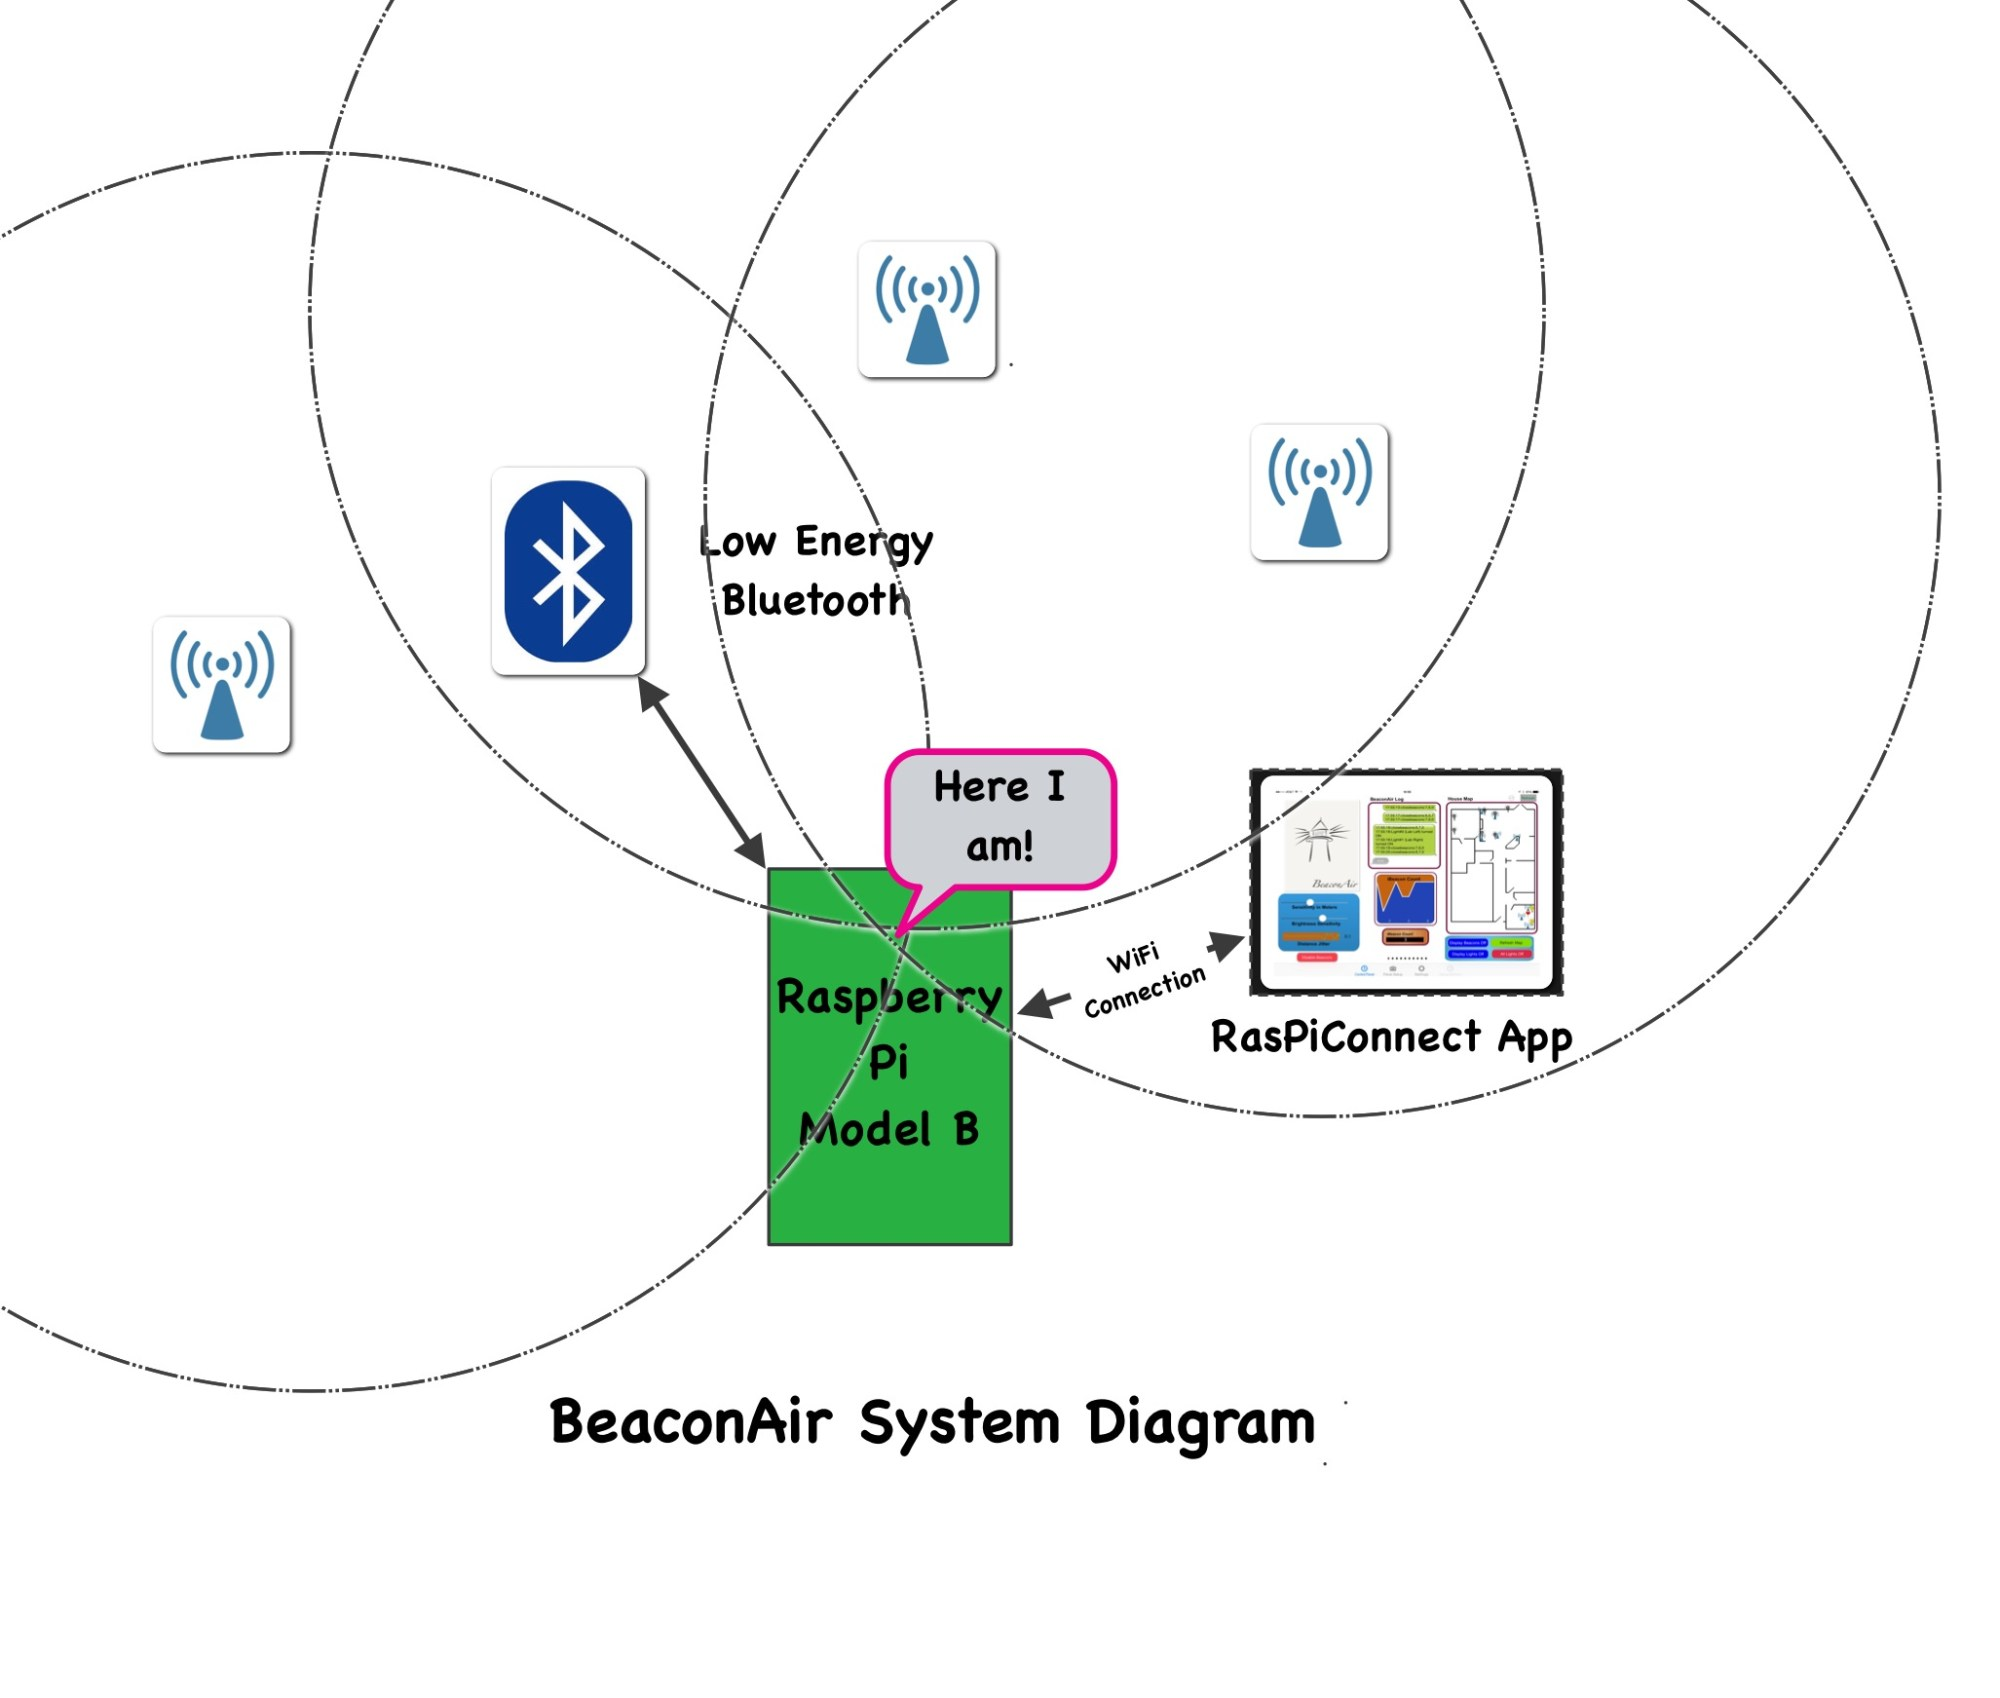 hight resolution of beaconair on raspberry pi ibeacons